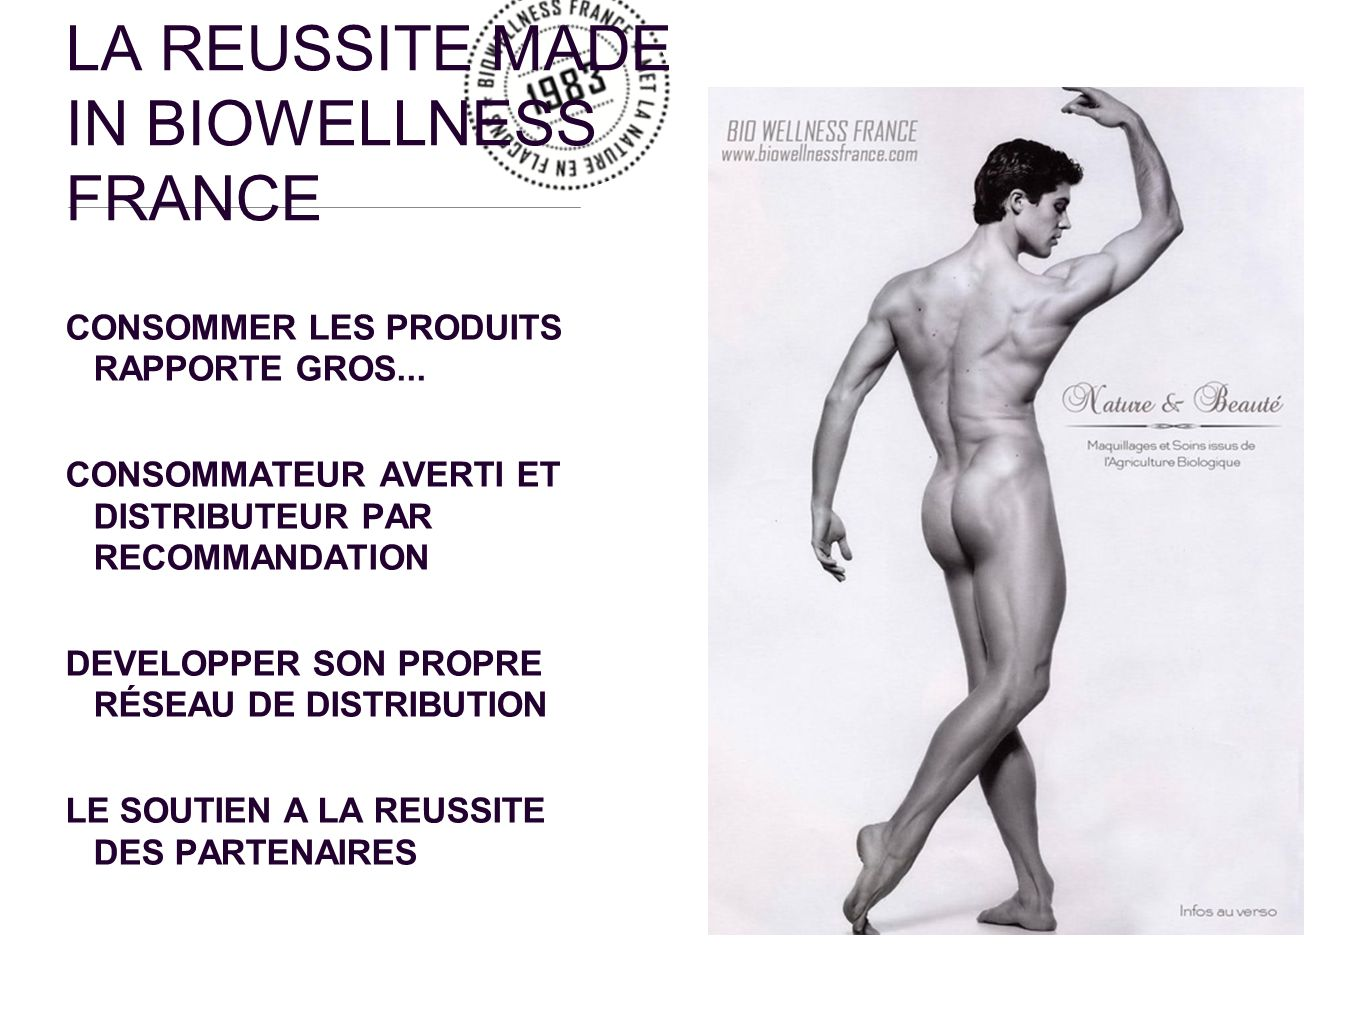 LA REUSSITE MADE IN BIOWELLNESS FRANCE